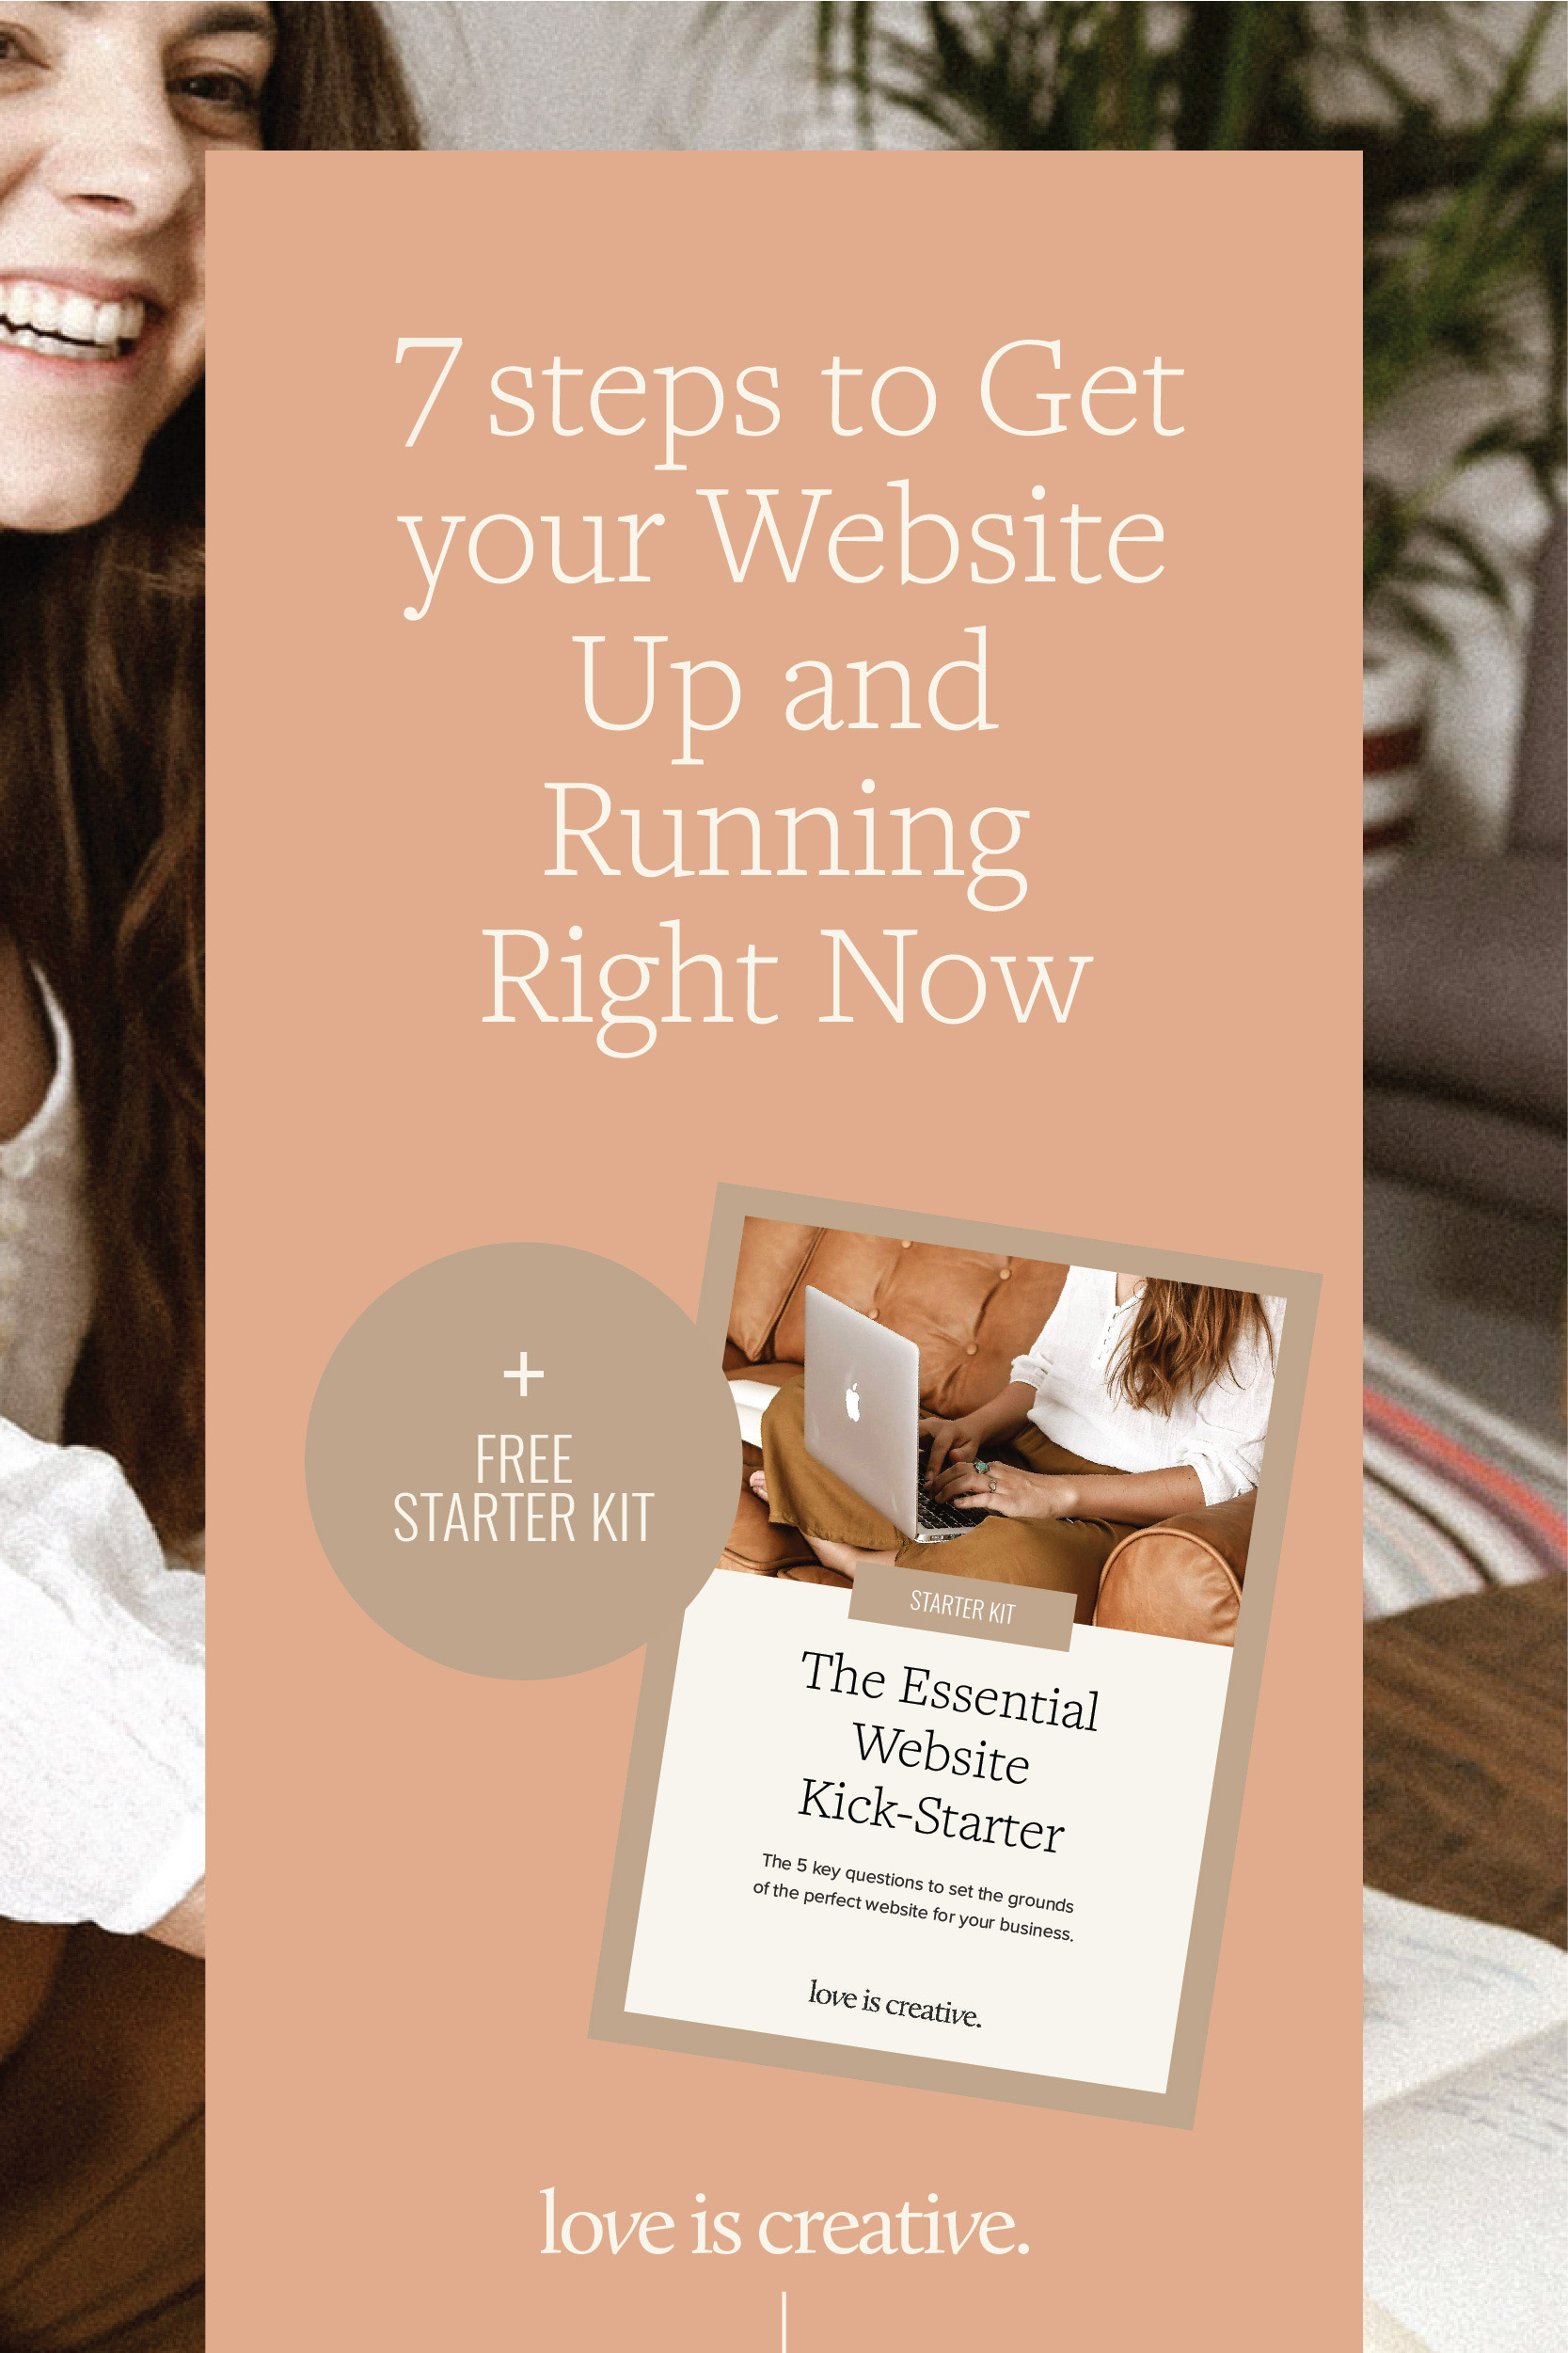 7 Steps to Get your Website Up and Running Right Now